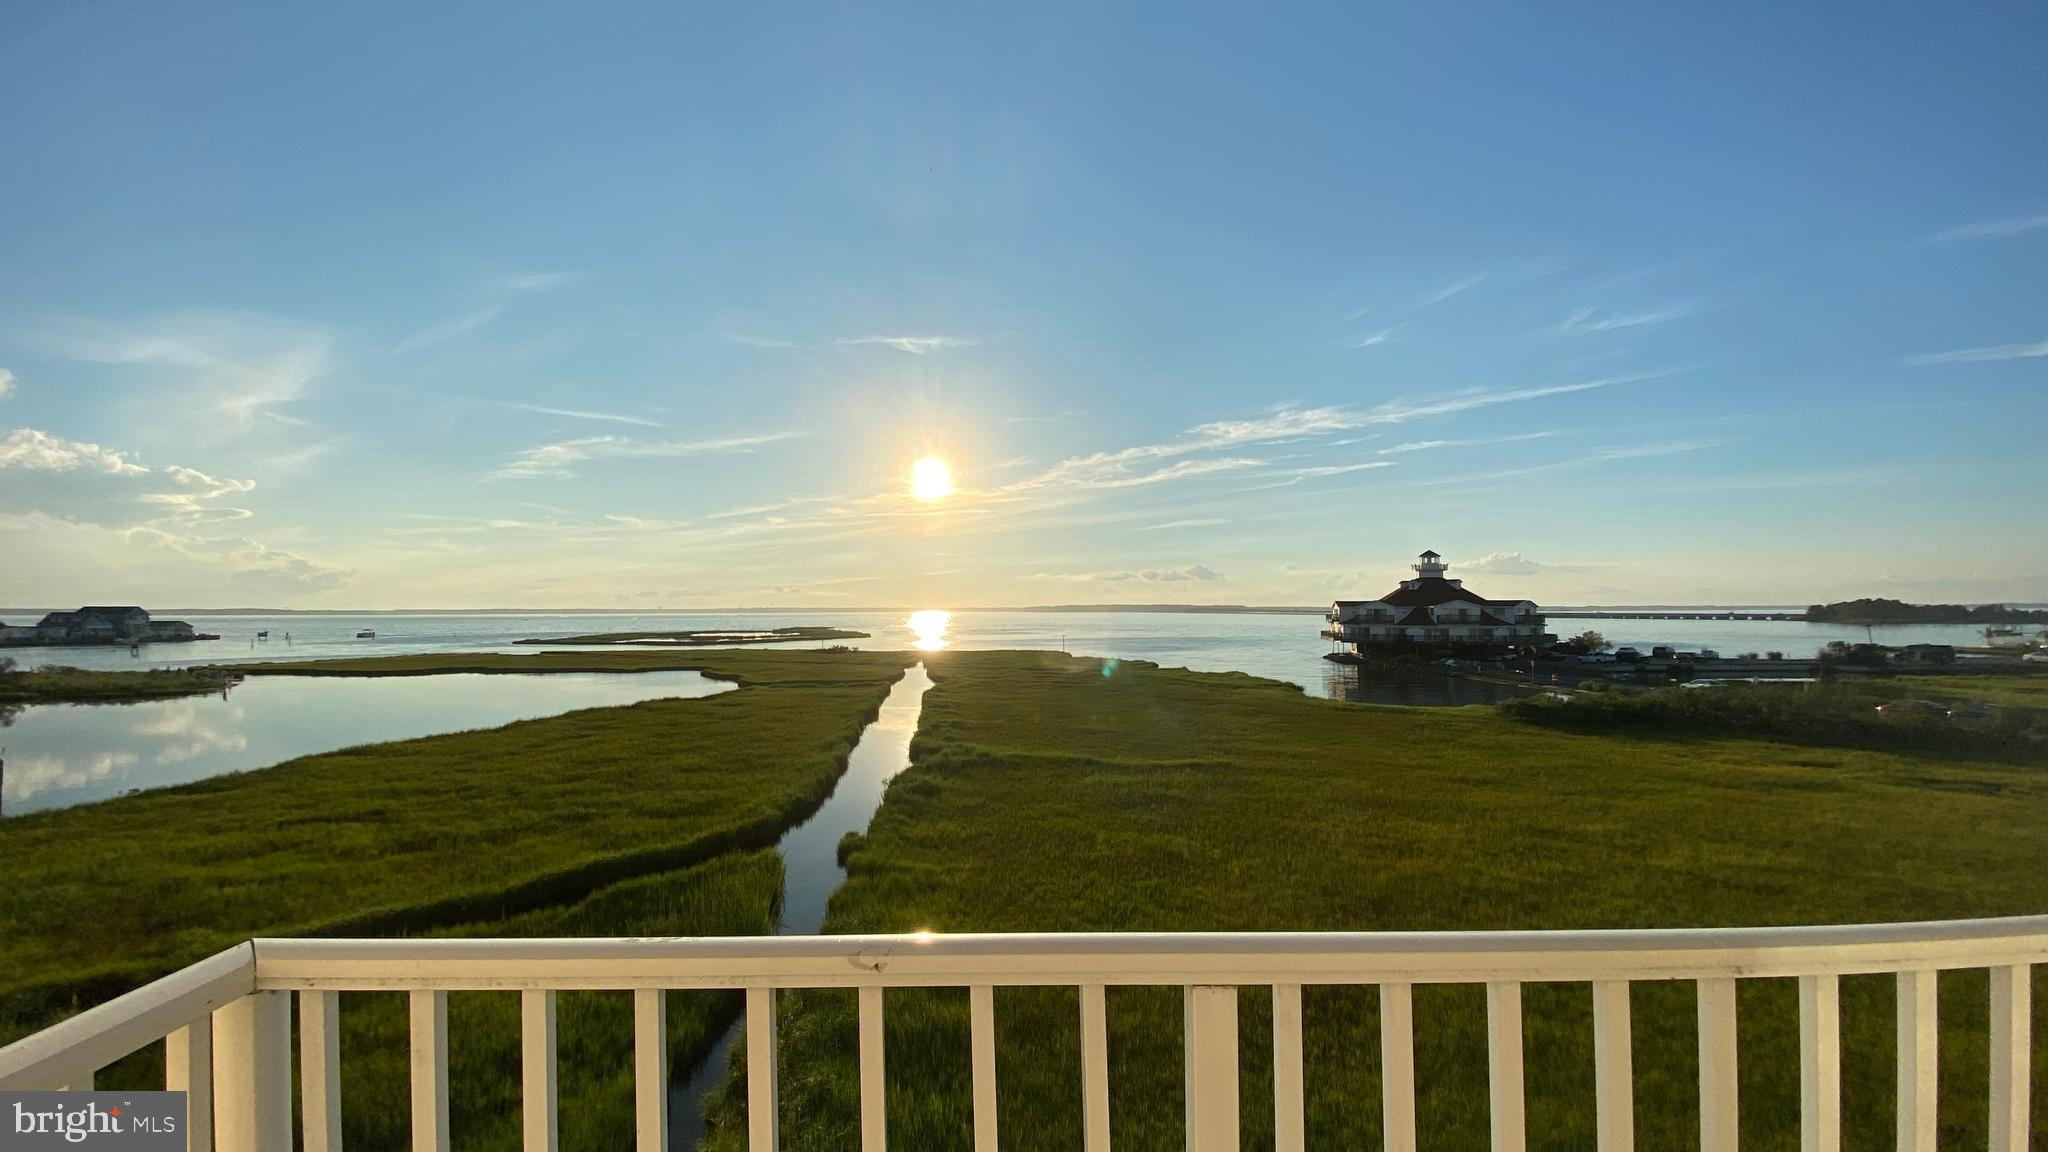 See the best sunsets in Ocean City at The Maresol!  A rare opportunity to acquire a unit in one of the most popular buildings in Ocean City.  The Maresol is almost at the end of a major renovation; brand new decks will be in place by next spring, and the long term plan will be complete.   Investors, this is your chance to acquire a beautiful bayside property at a great price.  Price has been kept low during these years of renovation; this may be your last chance to get a wonderful unit at this incredible price.  Sellers are willing to negotiate the cost of the remaining assessment as part of the transaction.  The Maresol is located near some of the brightest attractions in Ocean City.  Walk to Mackey's and Seacrets.  Any number of other small restaurants and shops are right there.  Get to the beach in no time; cross Coastal Highway right there at 56th street.  On the bayside take your kayak, canoe or paddleboard and launch at the end of 56th Street.